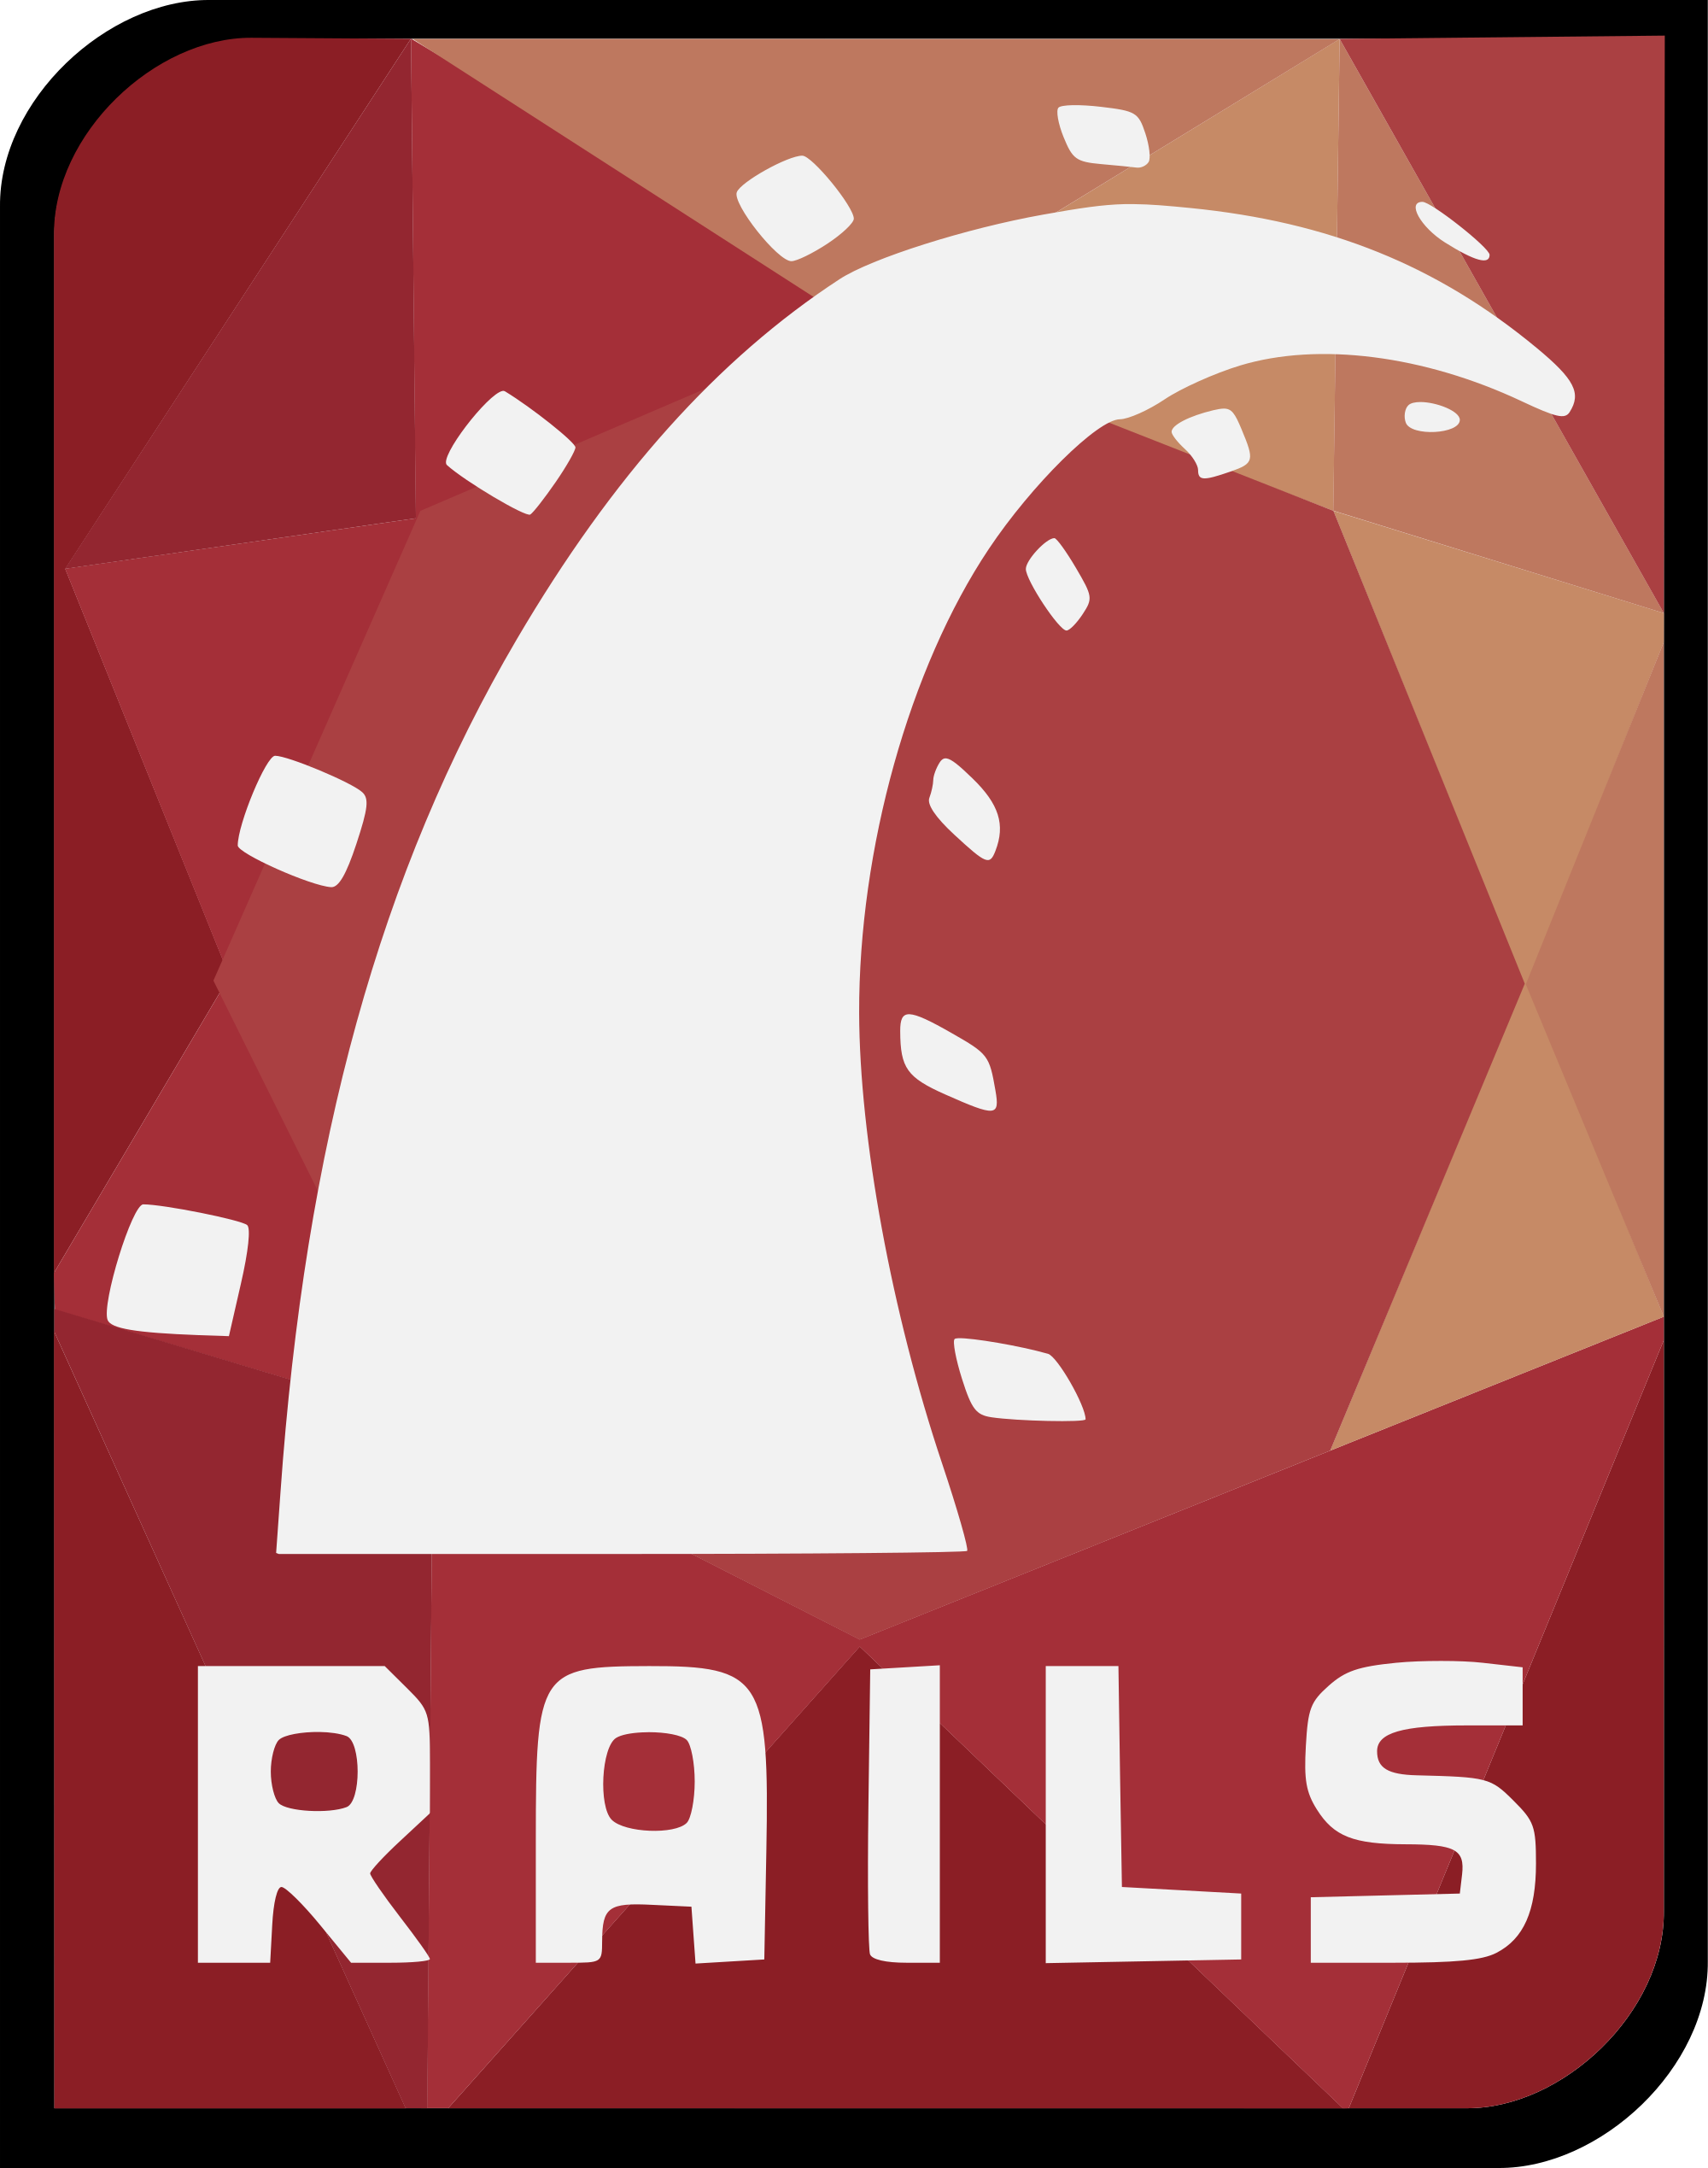 I will build a chat app with Rails 5 and Action Cable